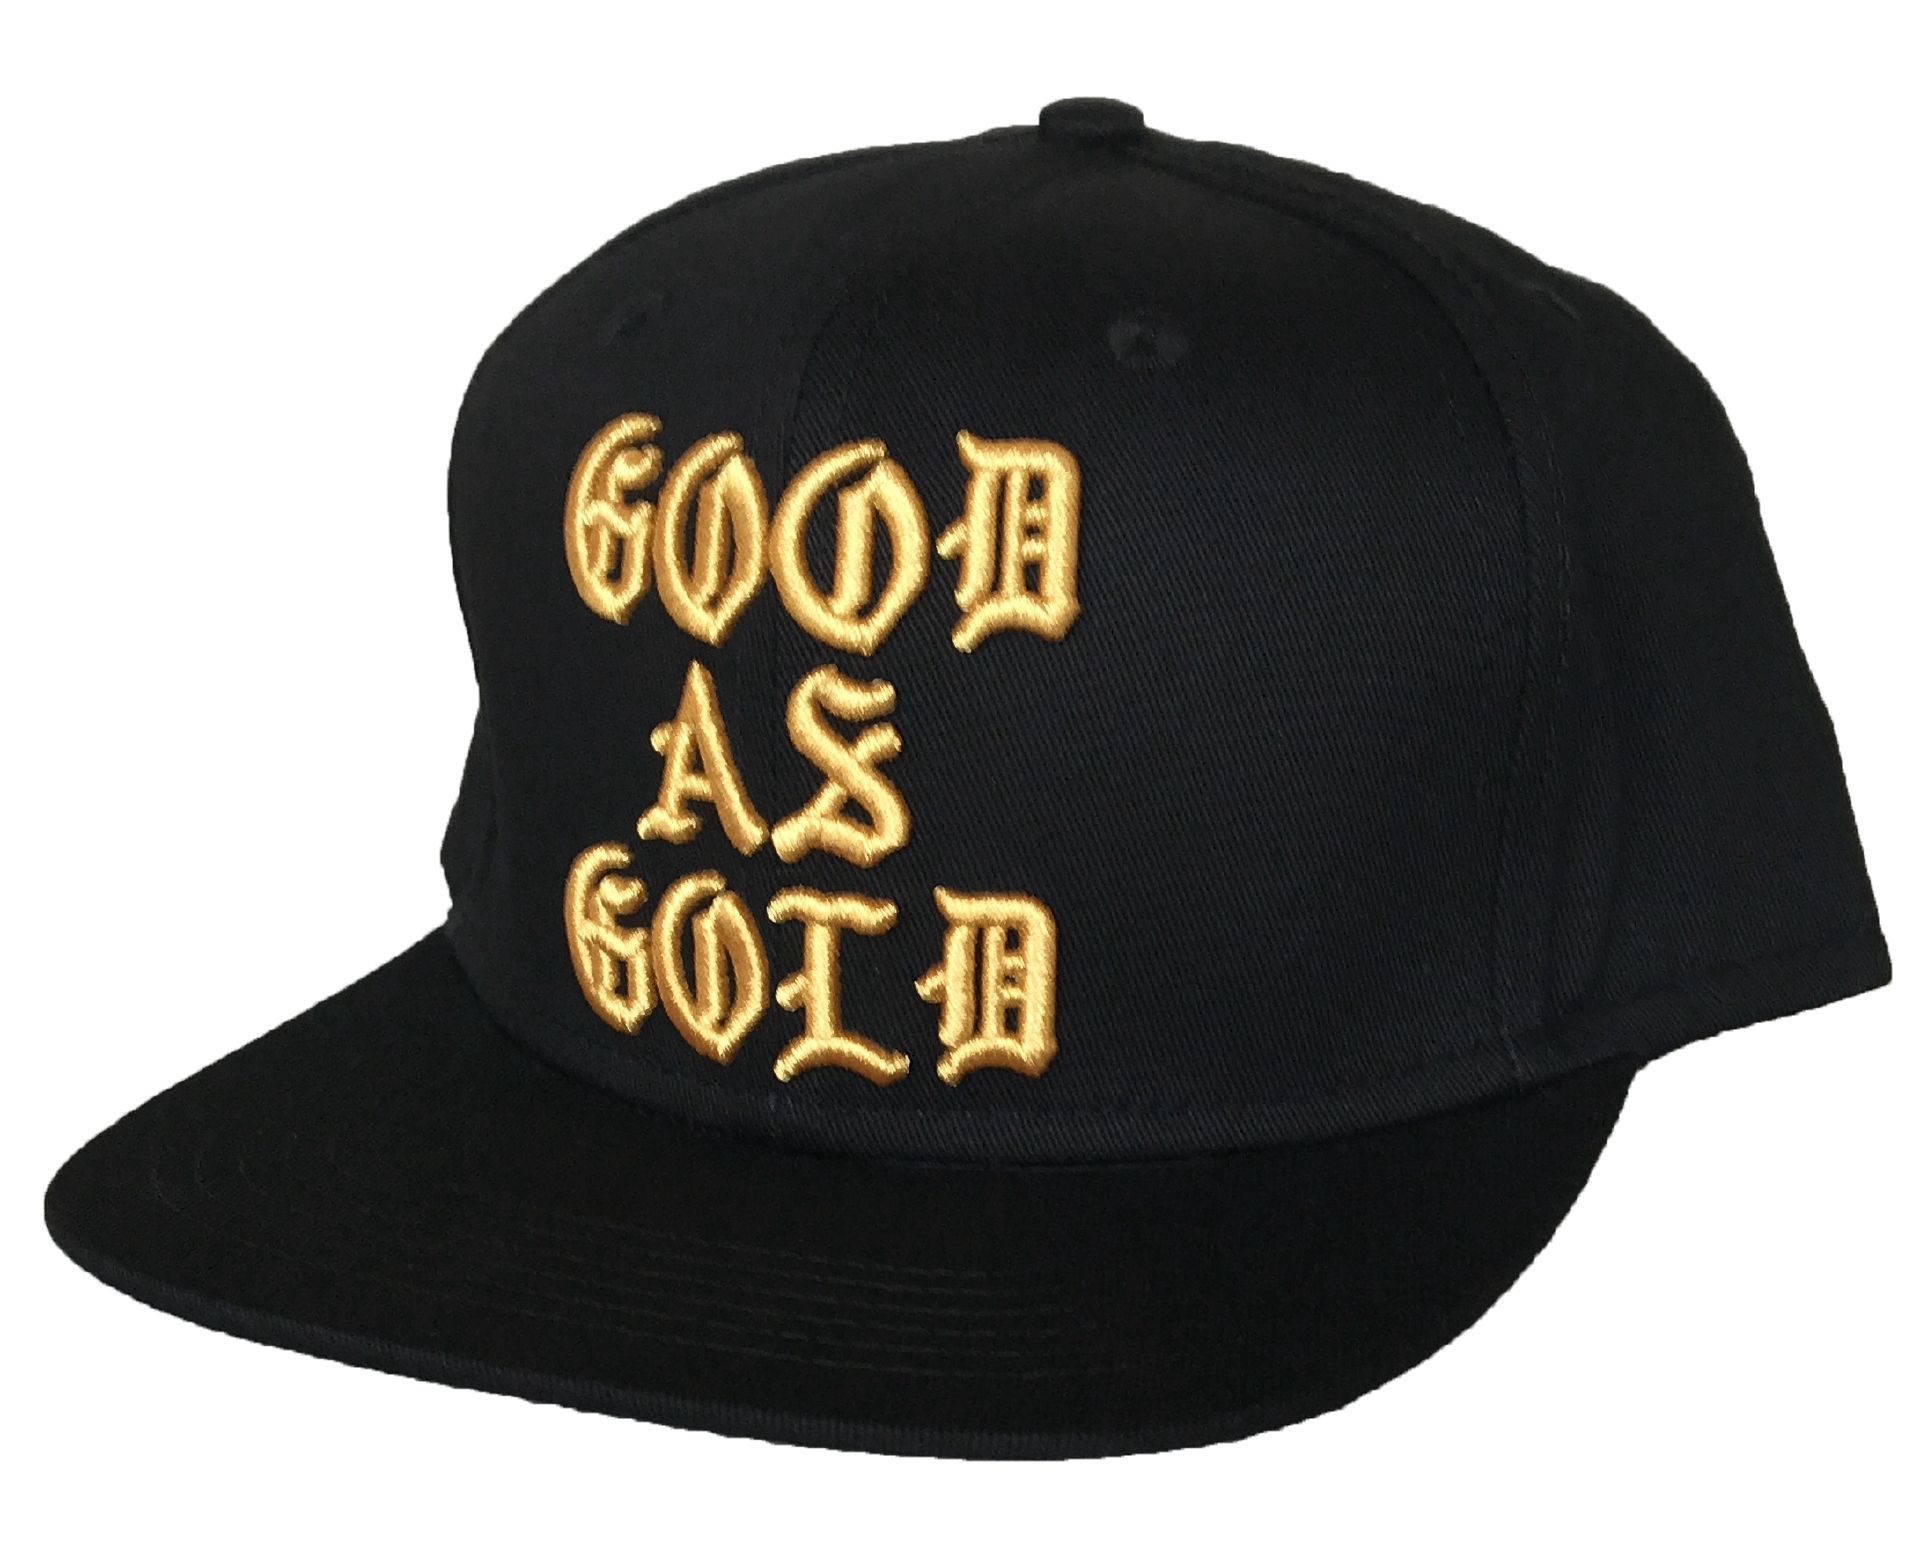 Custom 6 panel metallic gold embroidery snapback cap hat